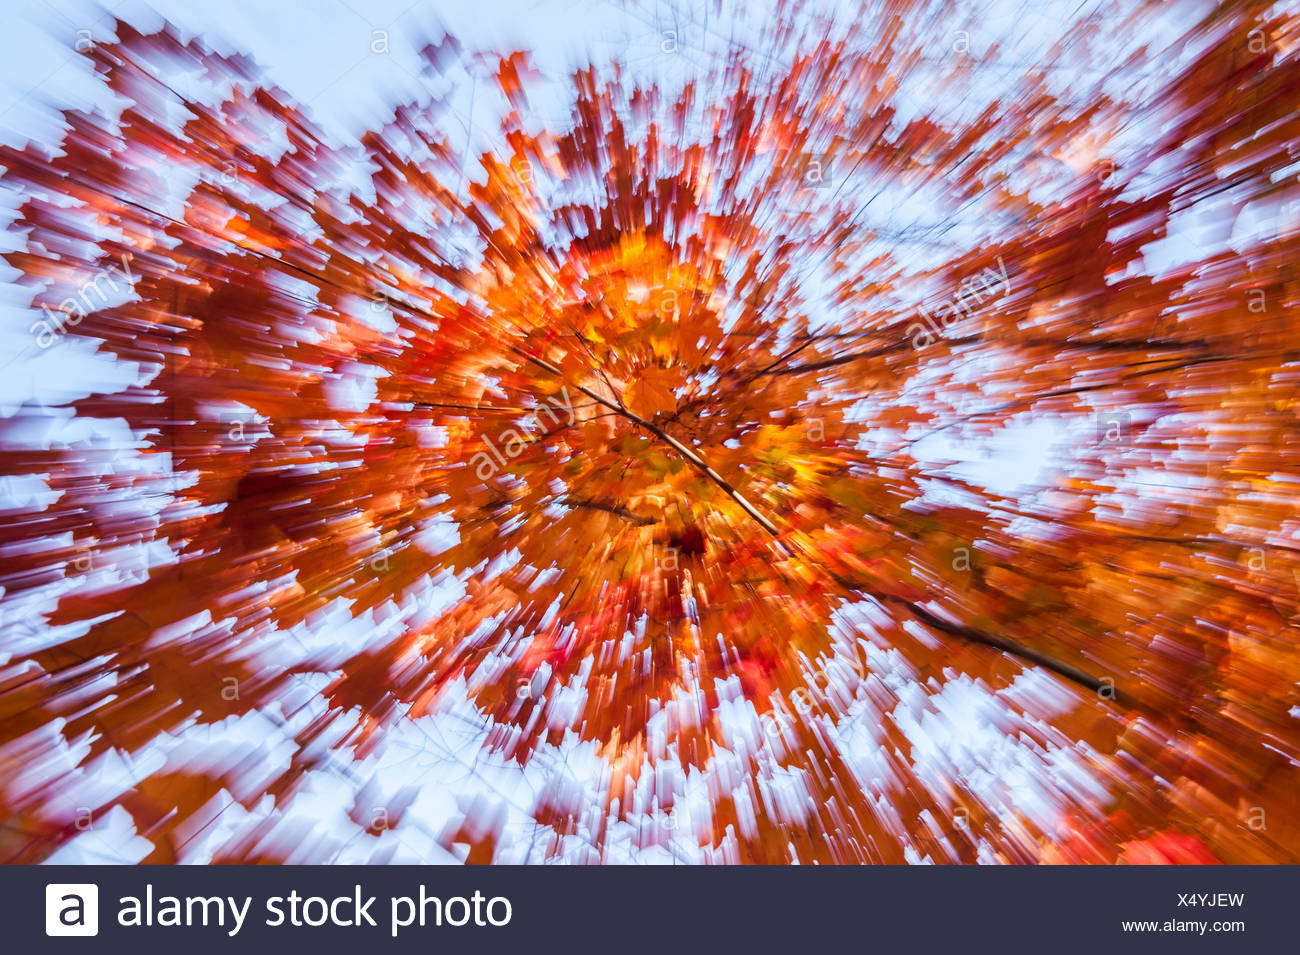 A zoomed shot of sugar maple leaves, Acer saccharum, in autumn hues against a blue sky. - Stock Image